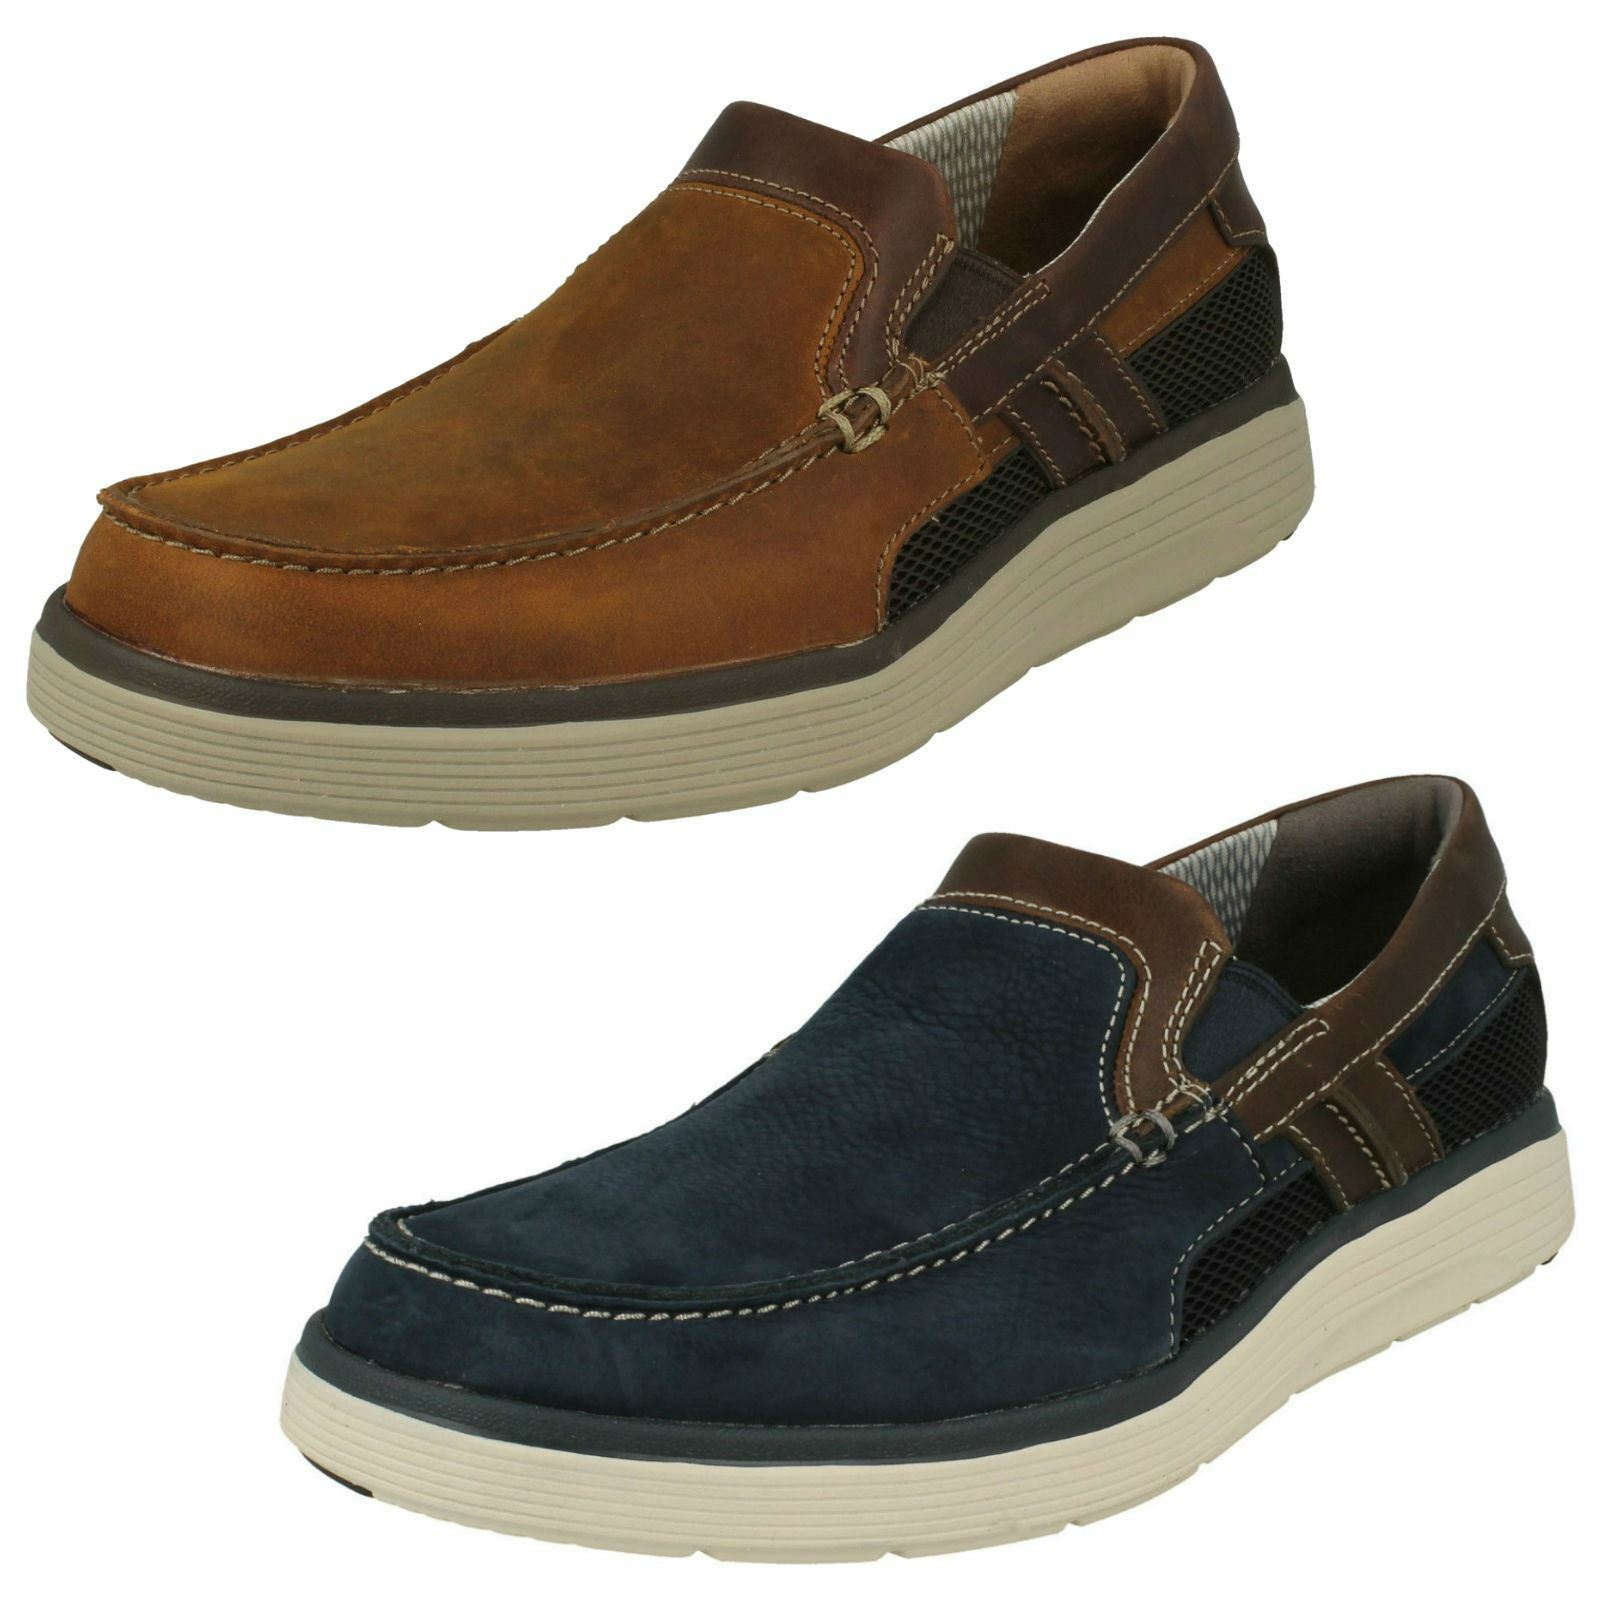 'Mens Clarks' Casual Slip On shoes - Un Abode Free